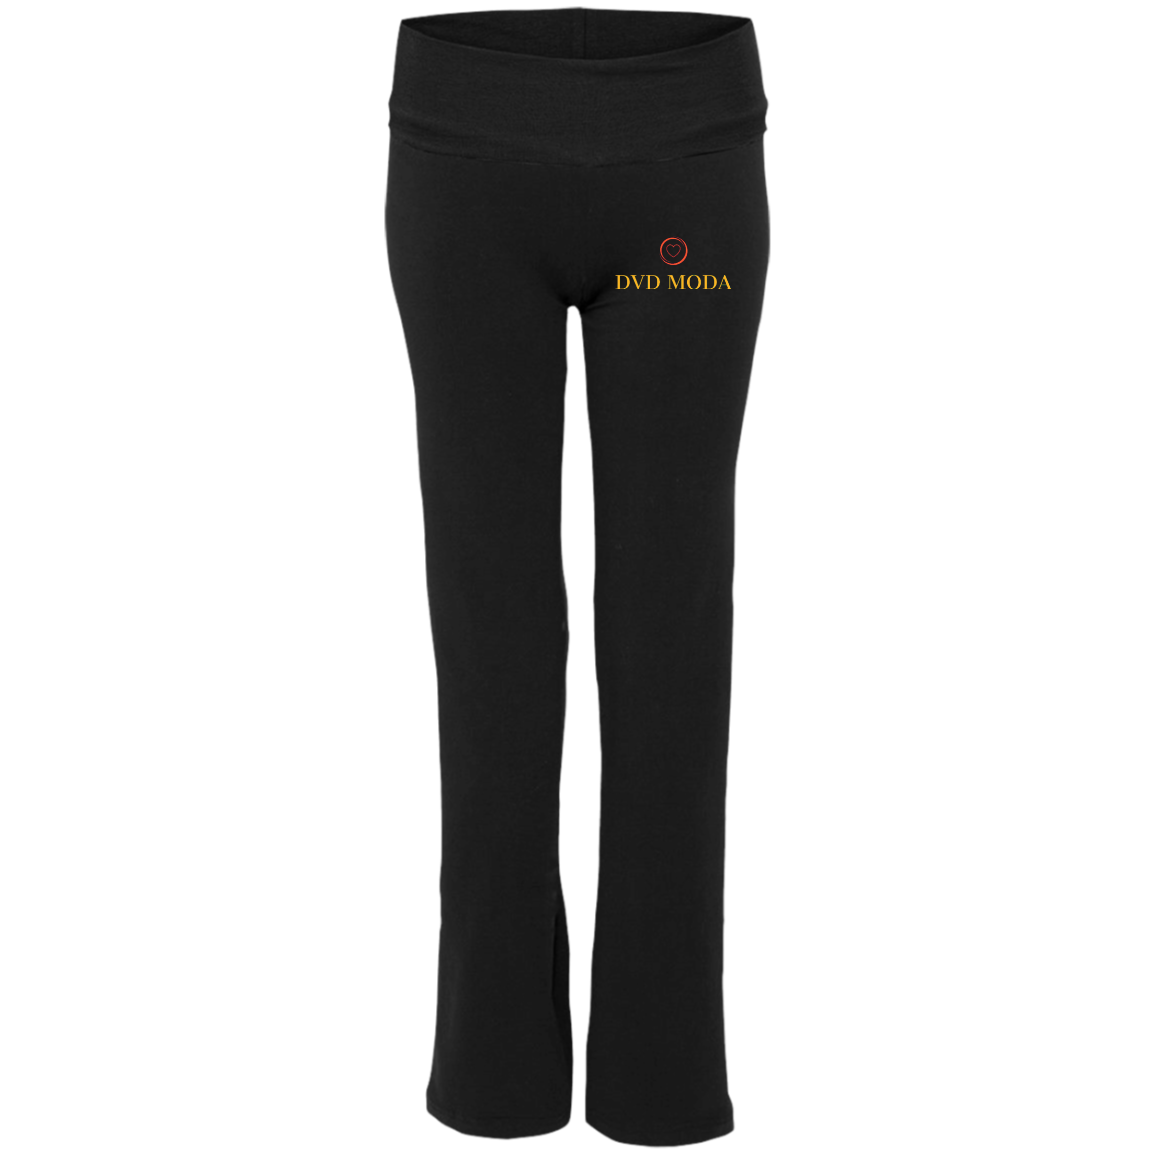 Boxercraft Ladies' Yoga Pants black - DVD MODA